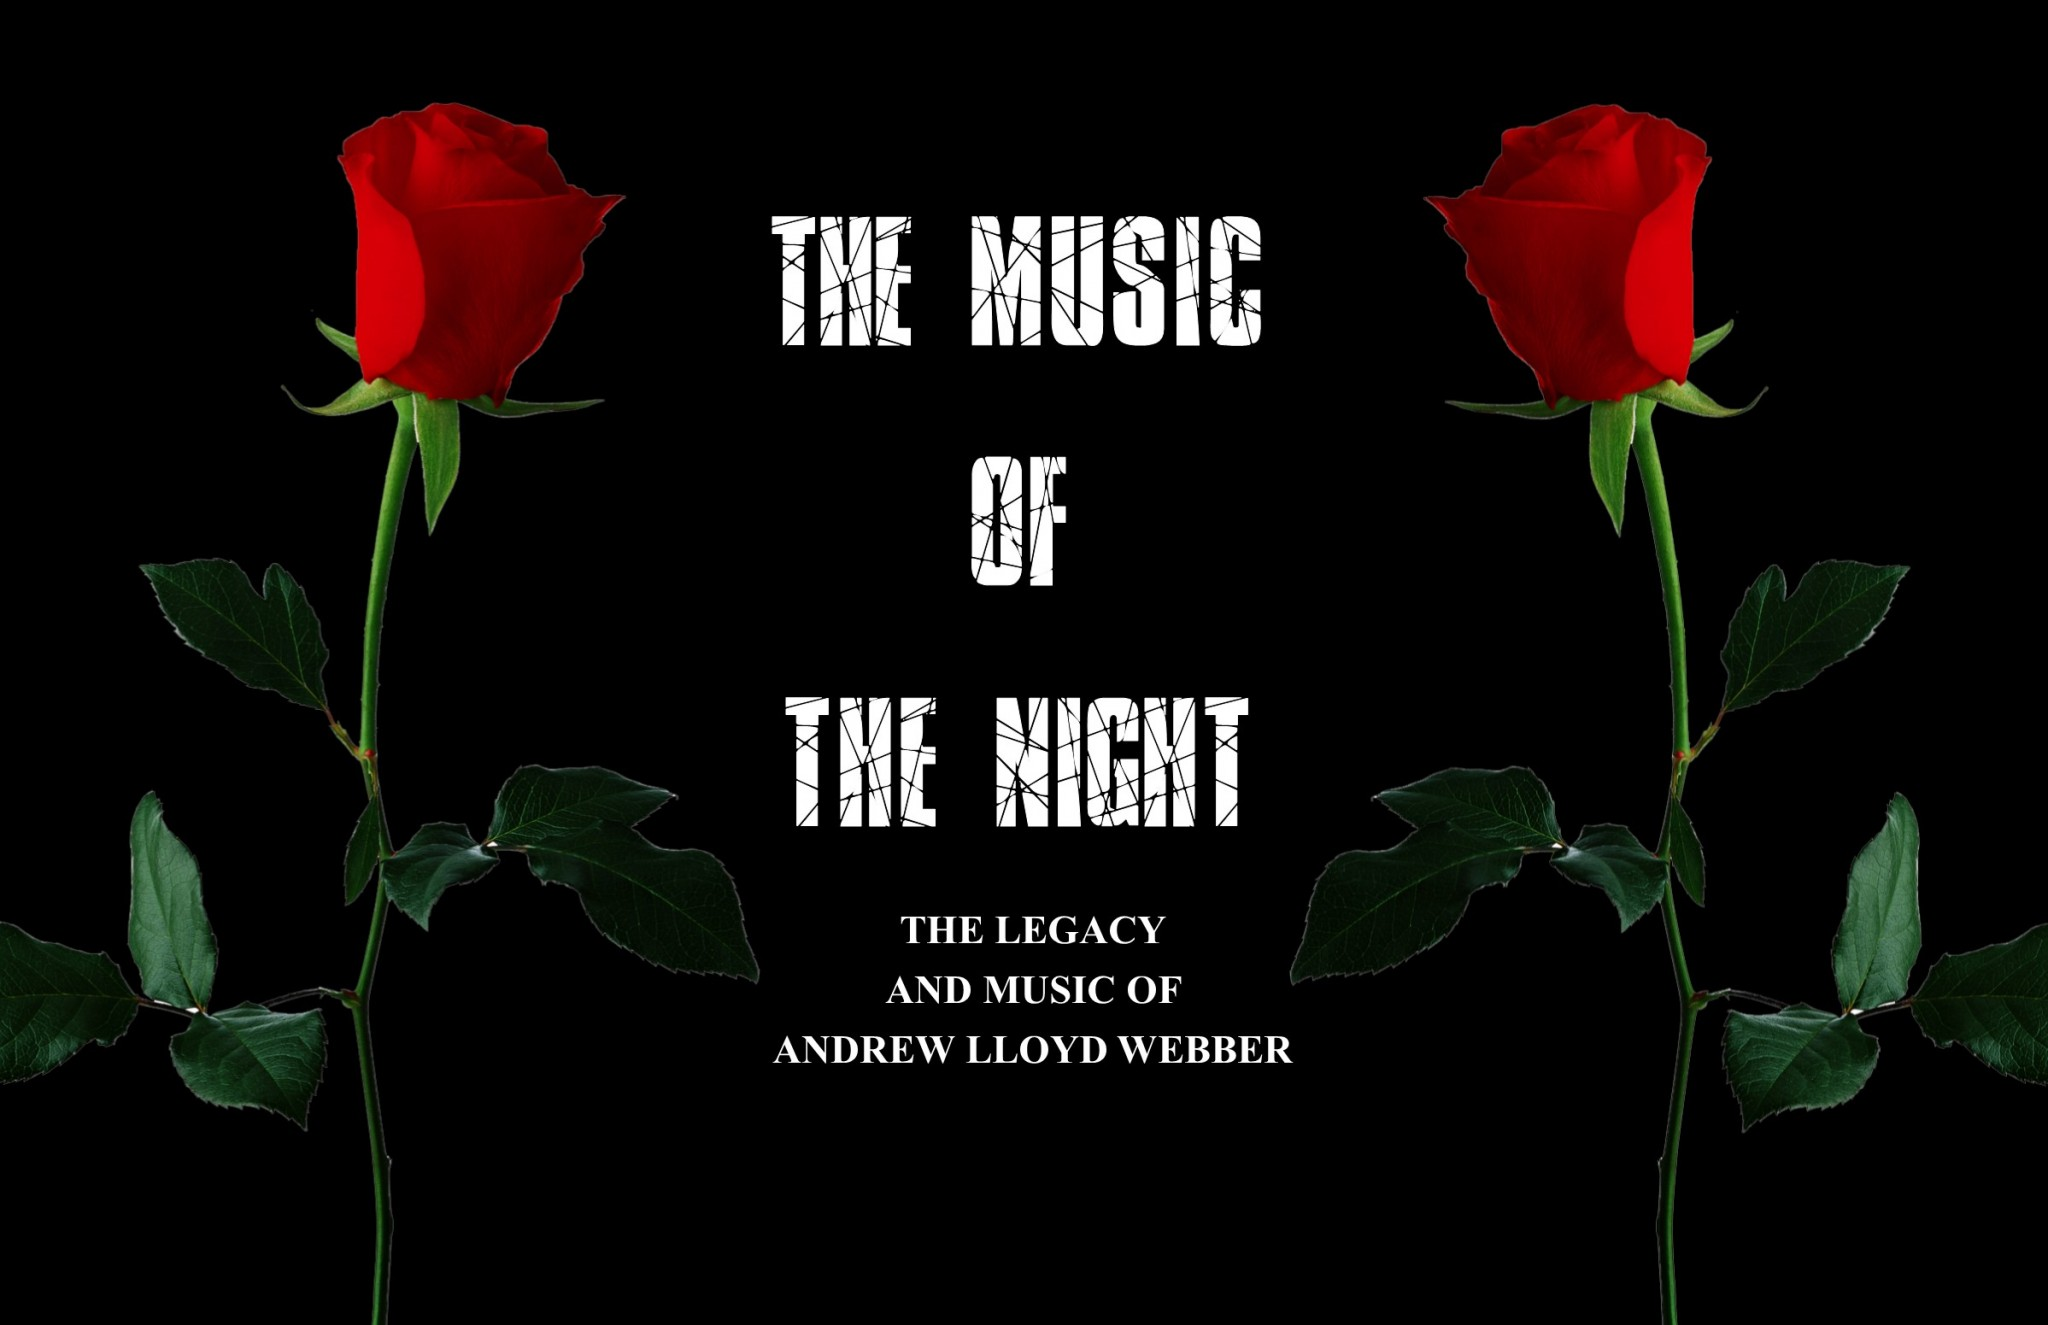 ALW 2020 jpeg - THE MUSIC OF THE NIGHT - THE LEGACY & MUSIC OF ANDREW LLOYD WEBBER